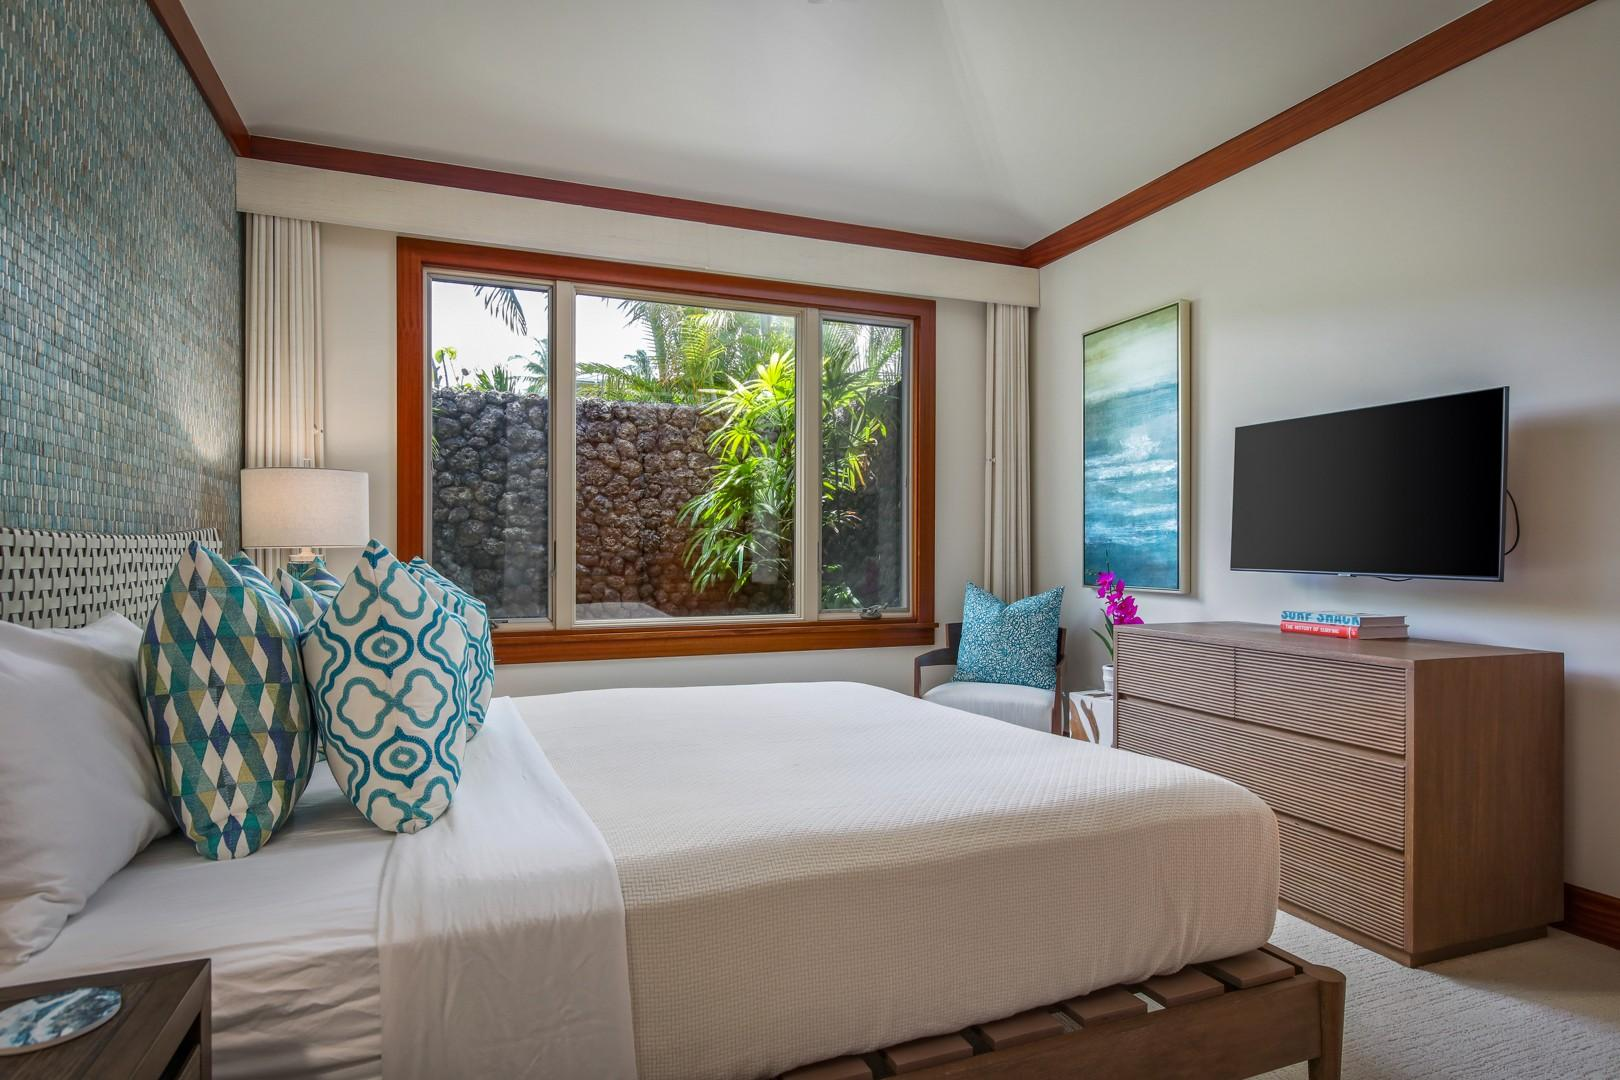 Alternate view of Guest Room 3.